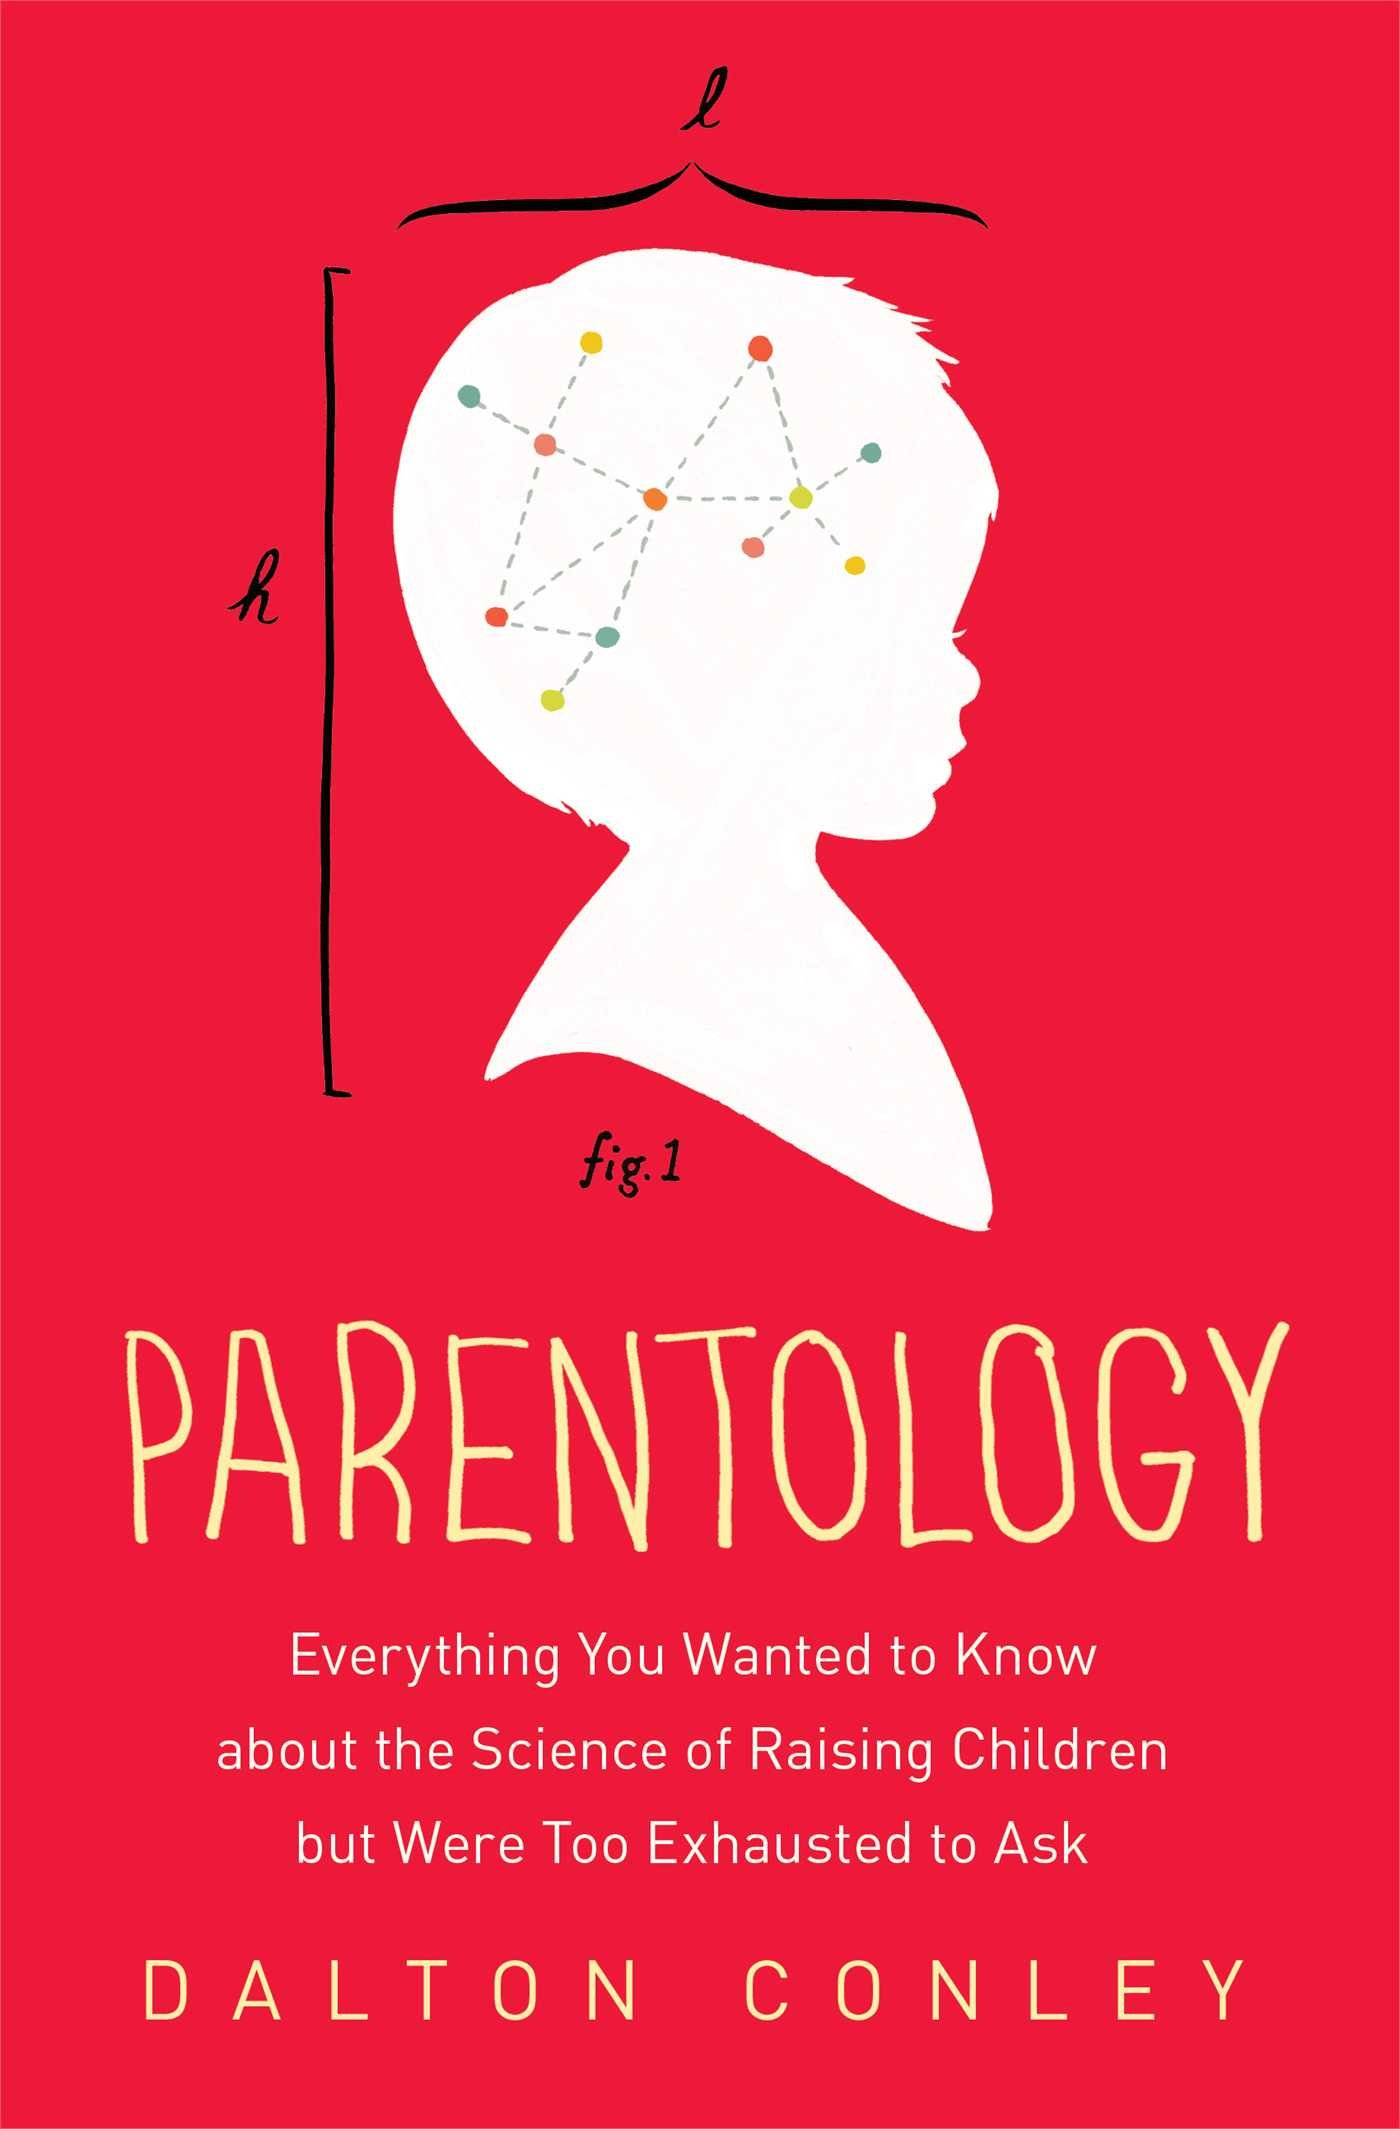 Parentology everything you wanted to know about the science of parentology everything you wanted to know about the science of raising children but were too exhausted to ask dalton conley 0884501139199 amazon fandeluxe Image collections